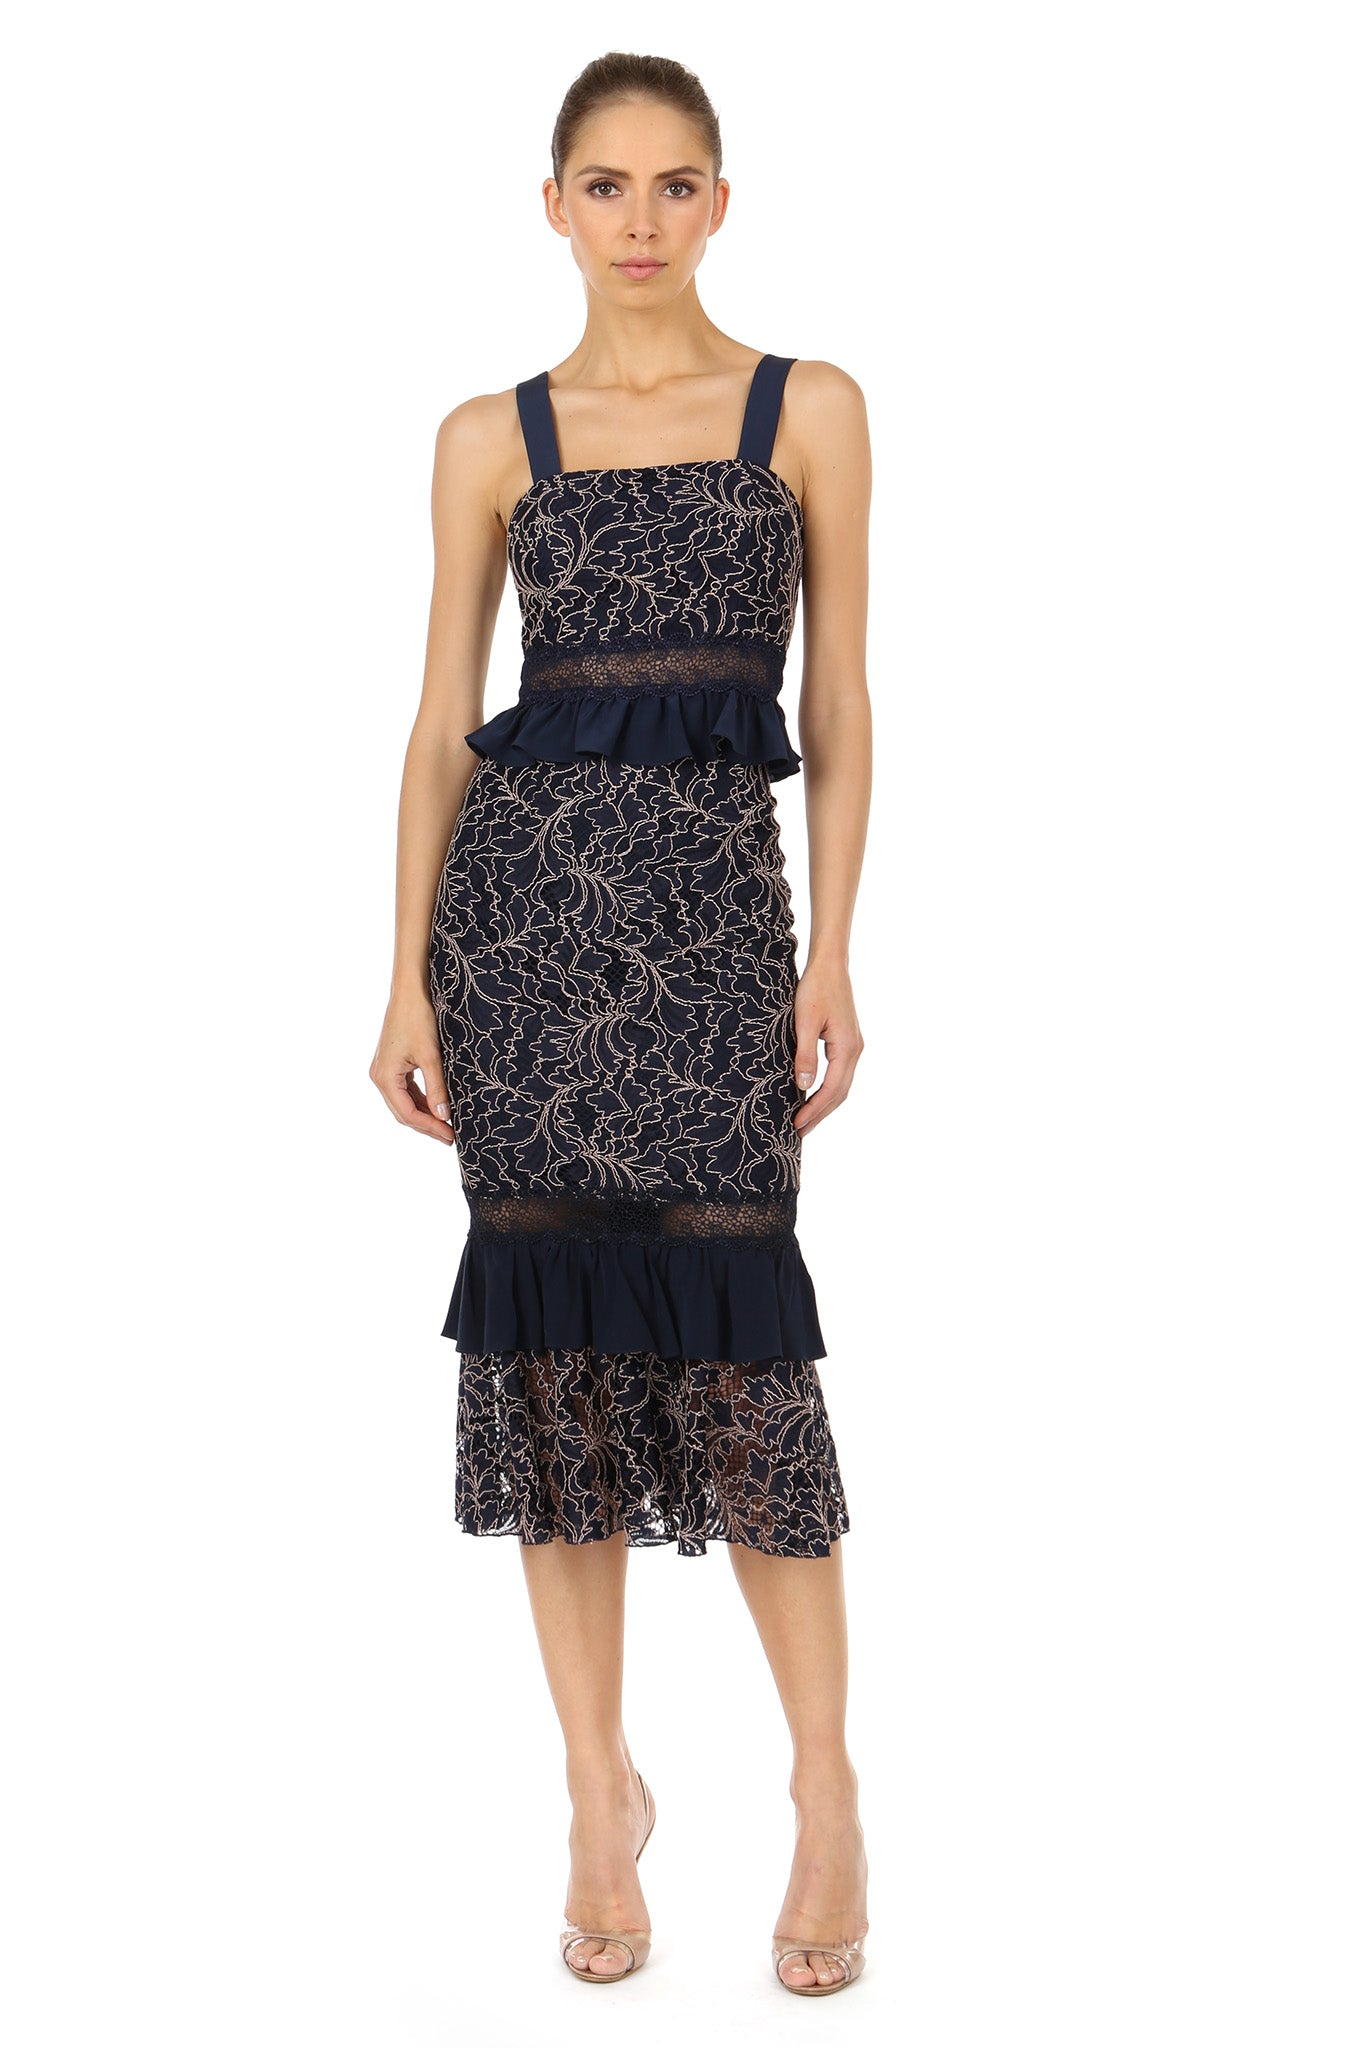 Jay Godfrey Navy Lace Top and Skirt Set - Front View